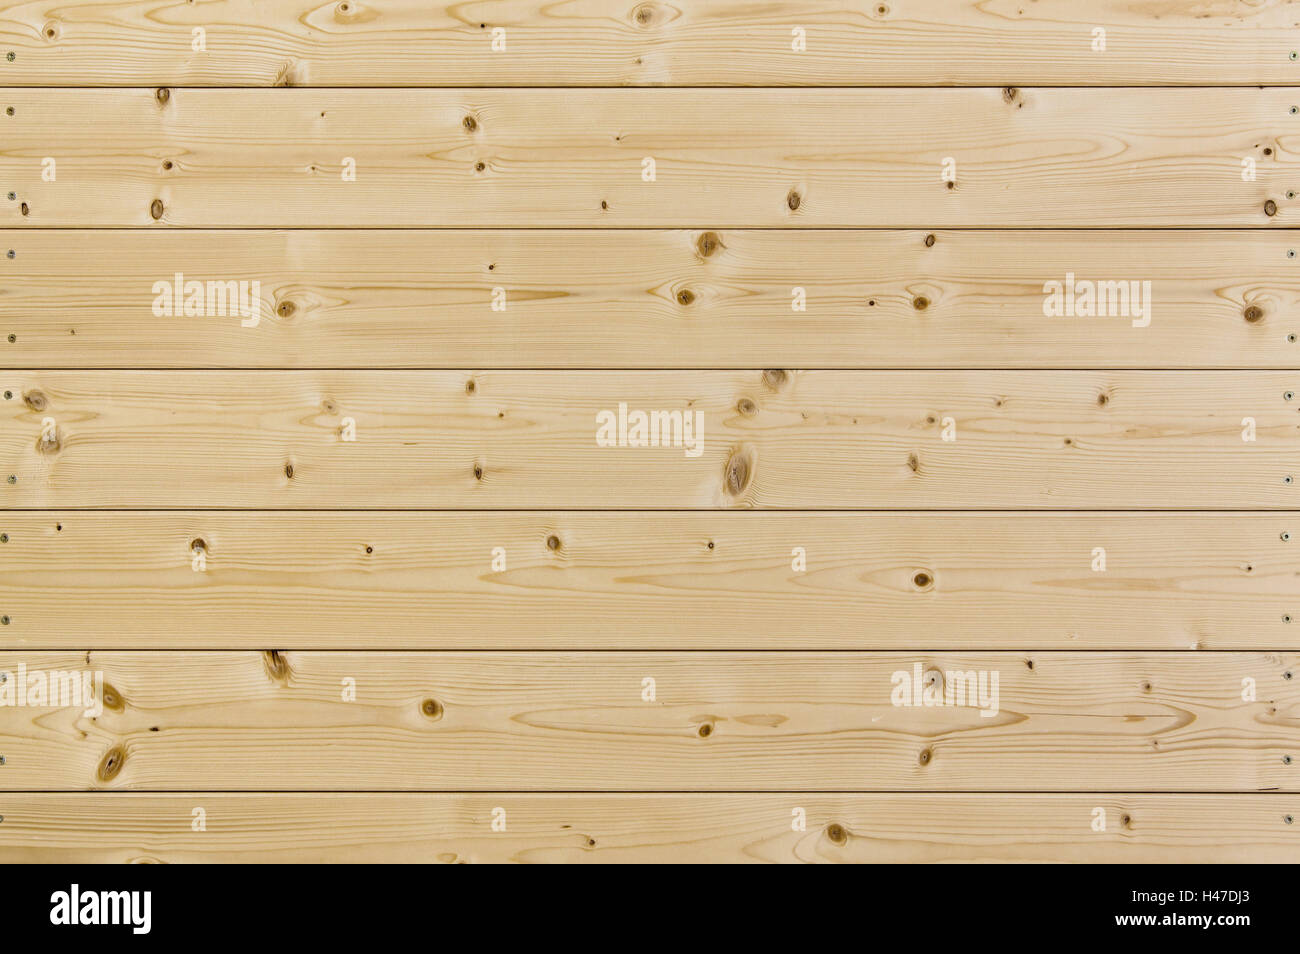 Wall Panelling Stock Photos & Wall Panelling Stock Images - Alamy